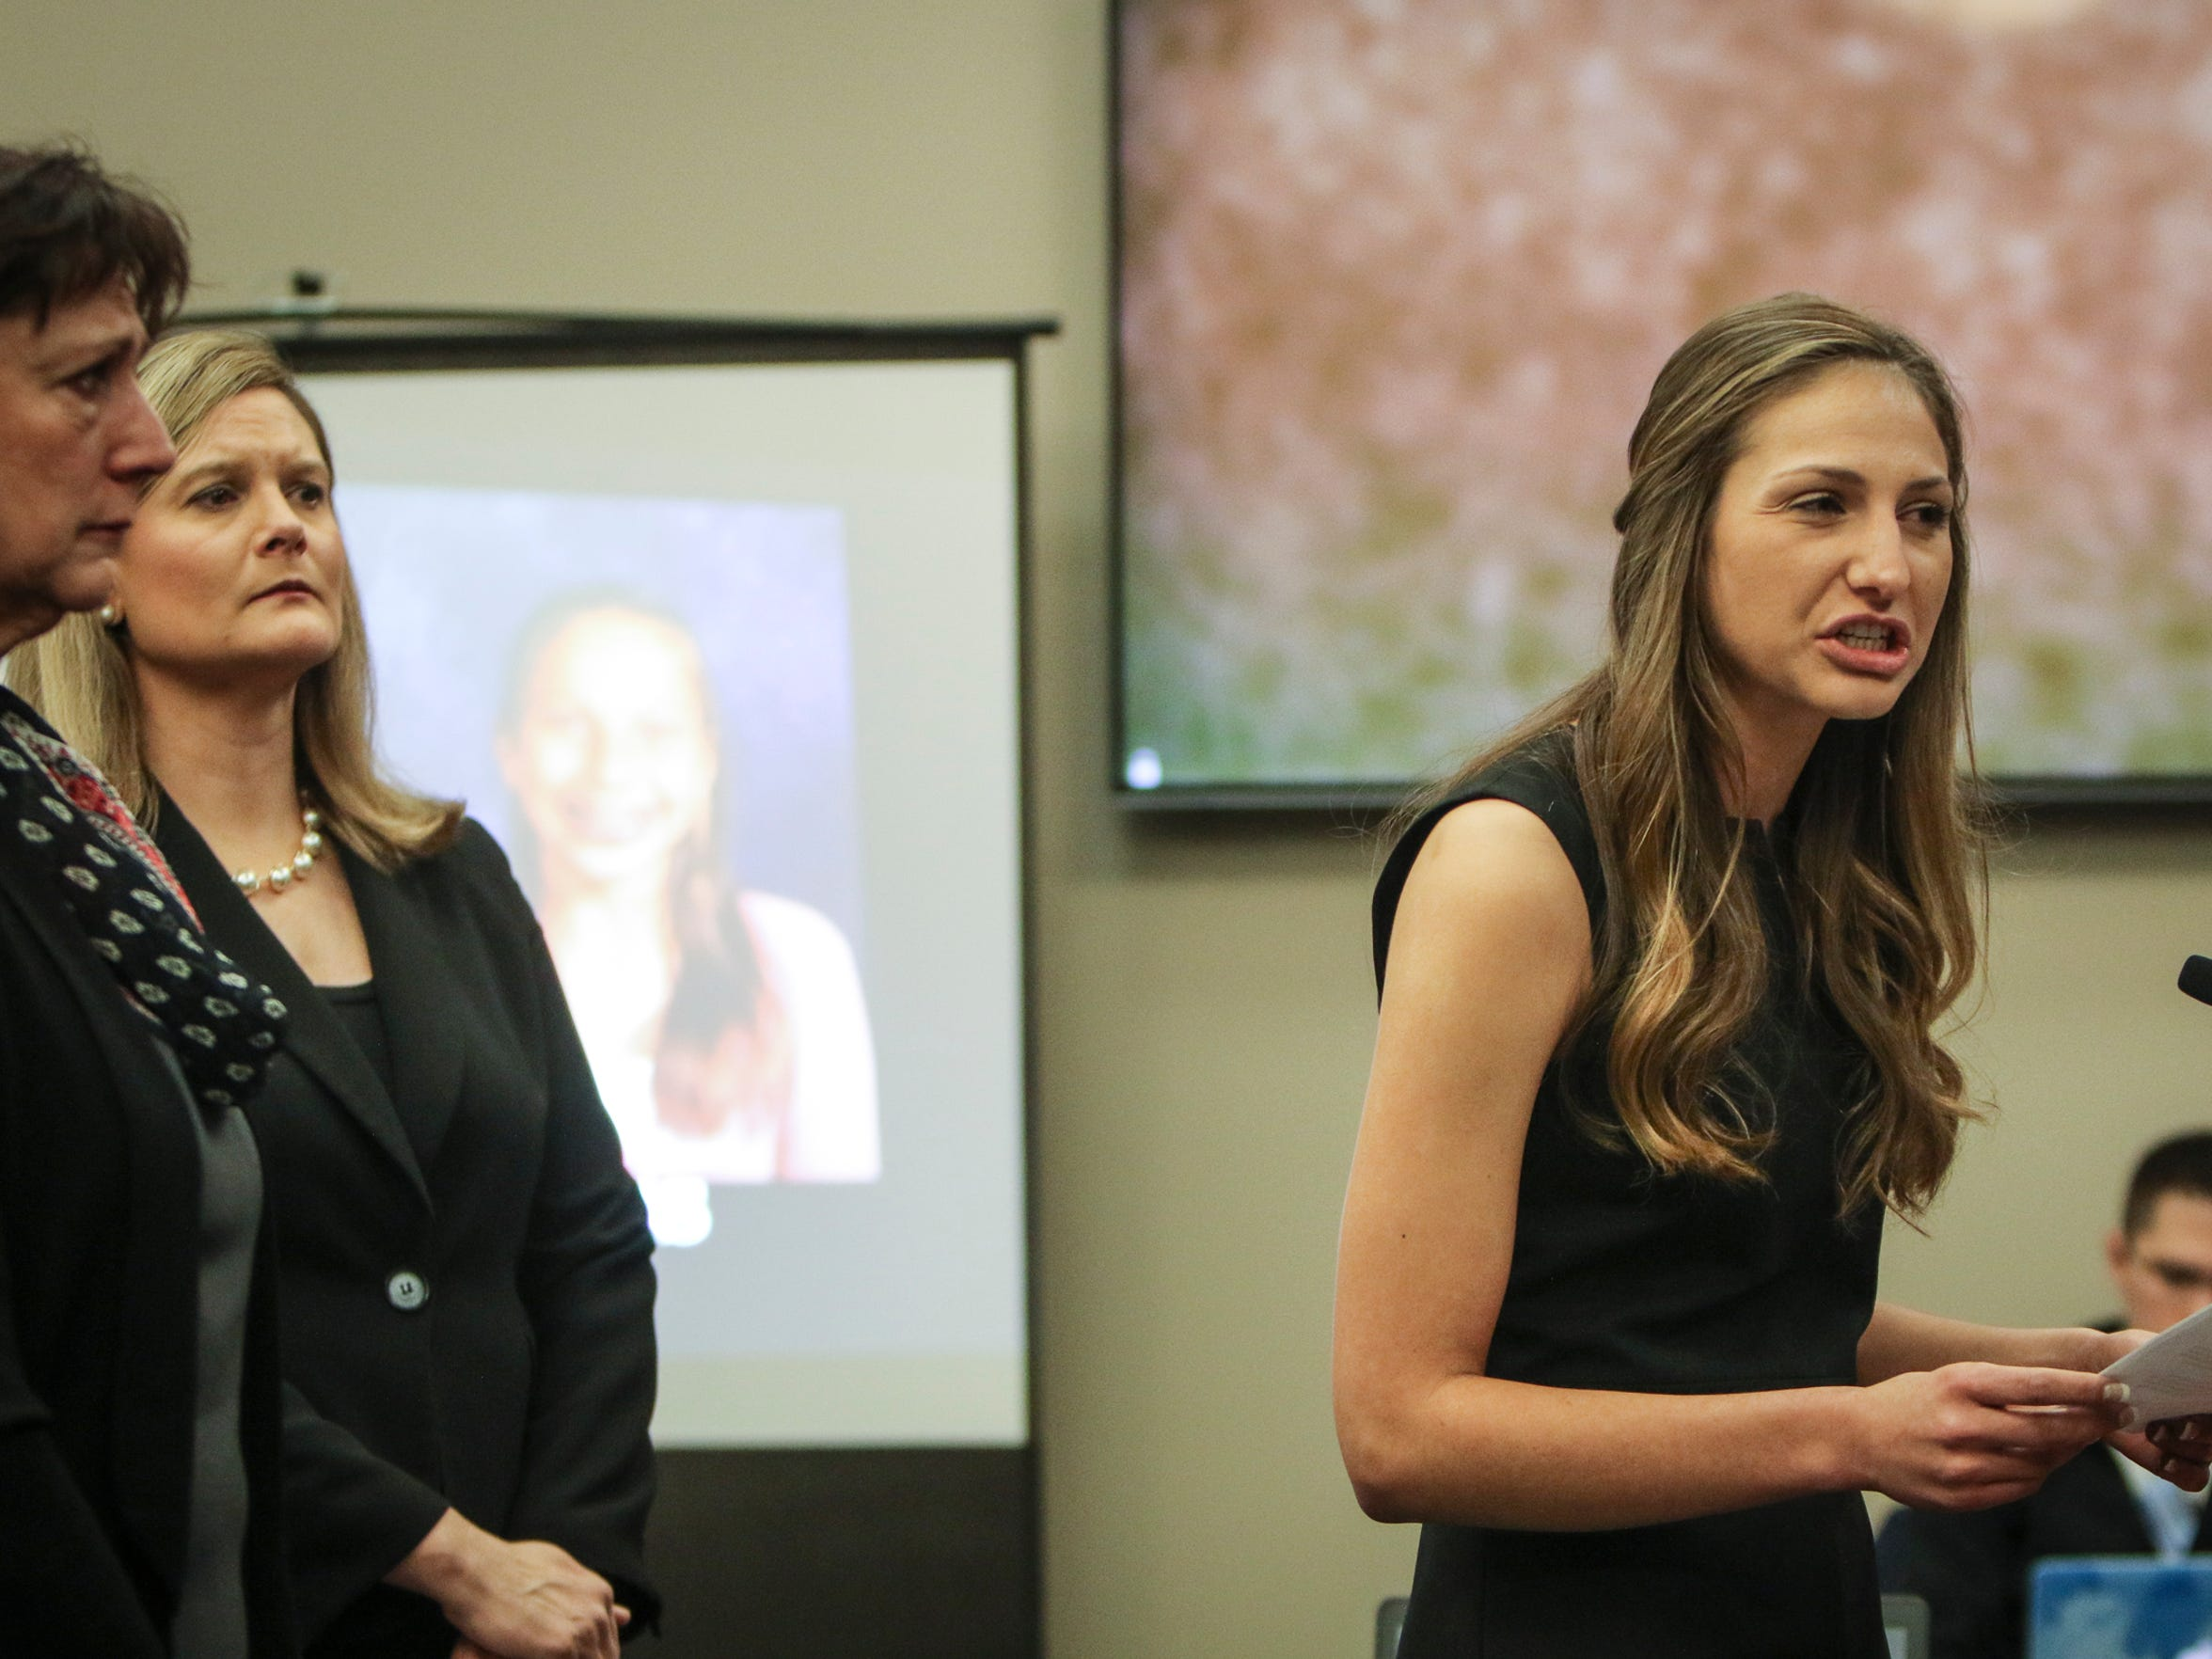 Kyle Stephens, who was abused by Larry Nassar as a child while visiting his home with her family, addresses Larry Nassar on Tuesday, Jan. 16, 2018, the first day of victim-impact statements in his Ingham County sentencing hearing. Behind Stephens at left are her mother and Assistant Attorney General Angela Povilaitis.